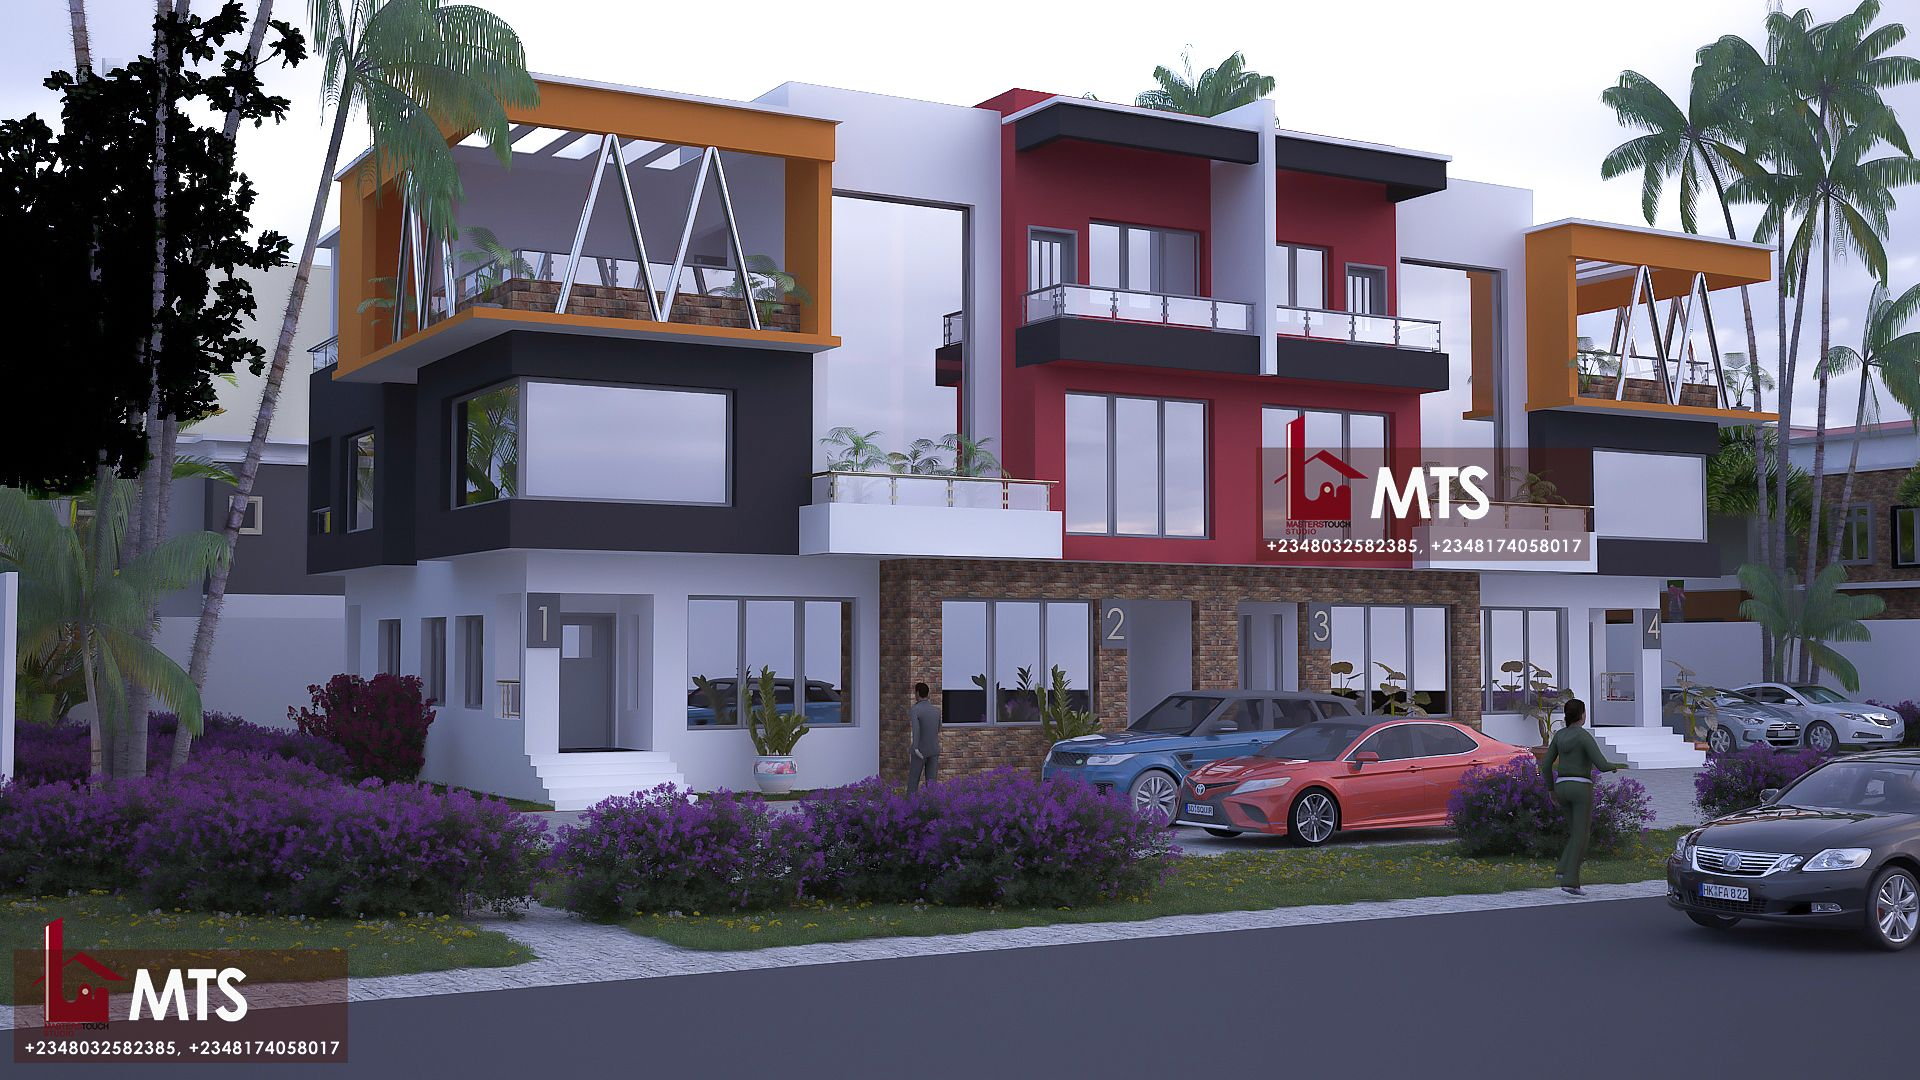 4 Units Terrace Duplex Duplex Design Modern Small House Design Duplex House Plans